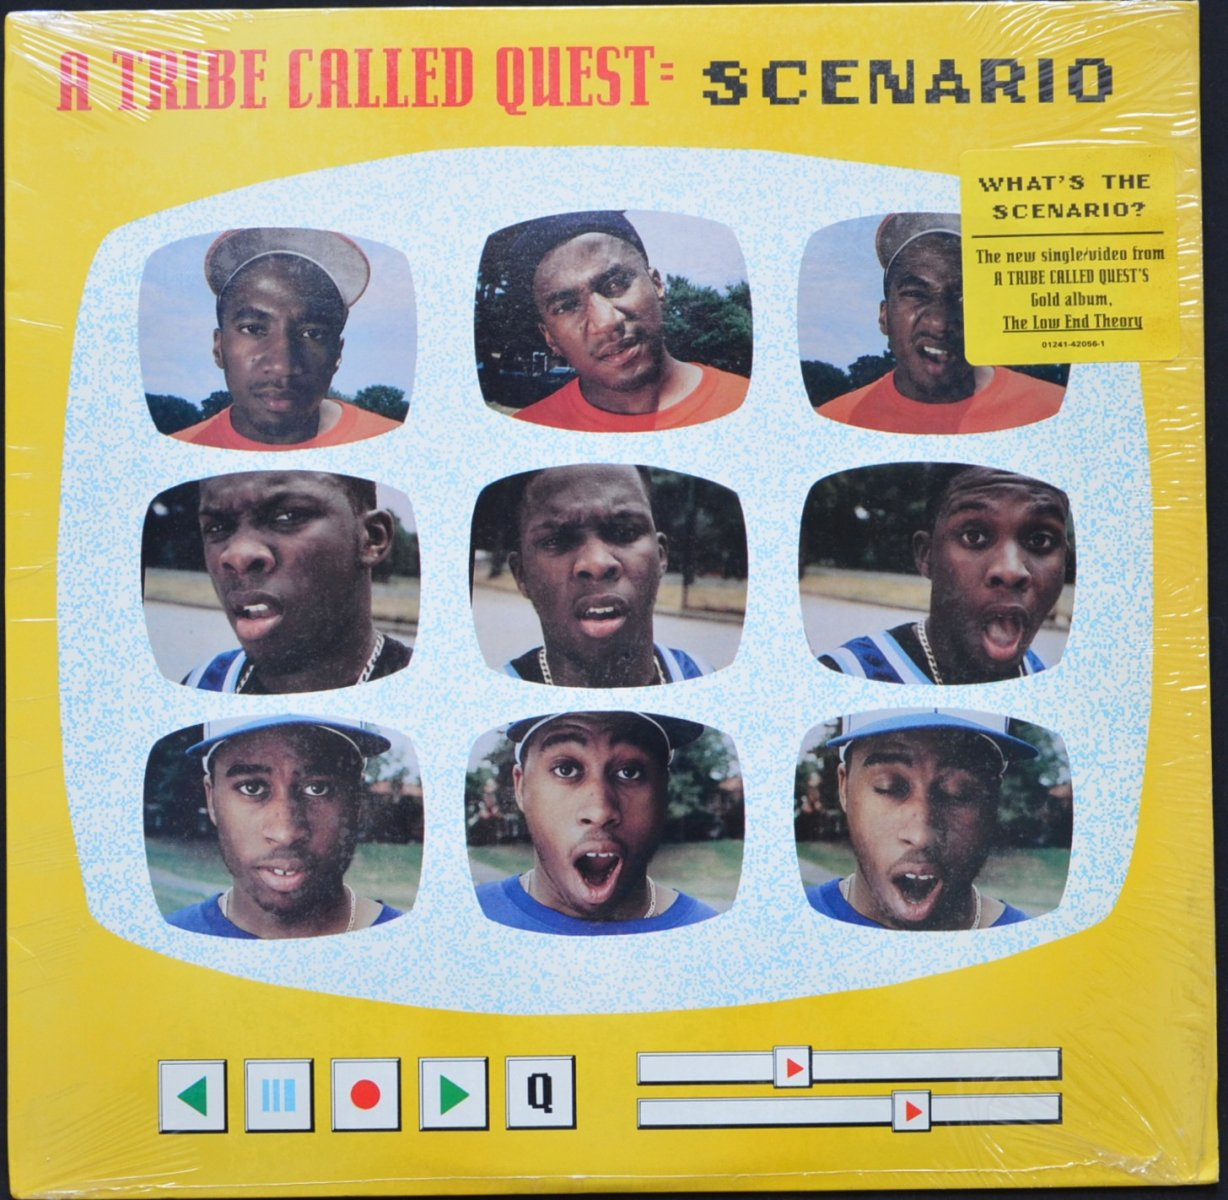 A TRIBE CALLED QUEST ‎/ SCENARIO / BUTTER (EDITED) (12